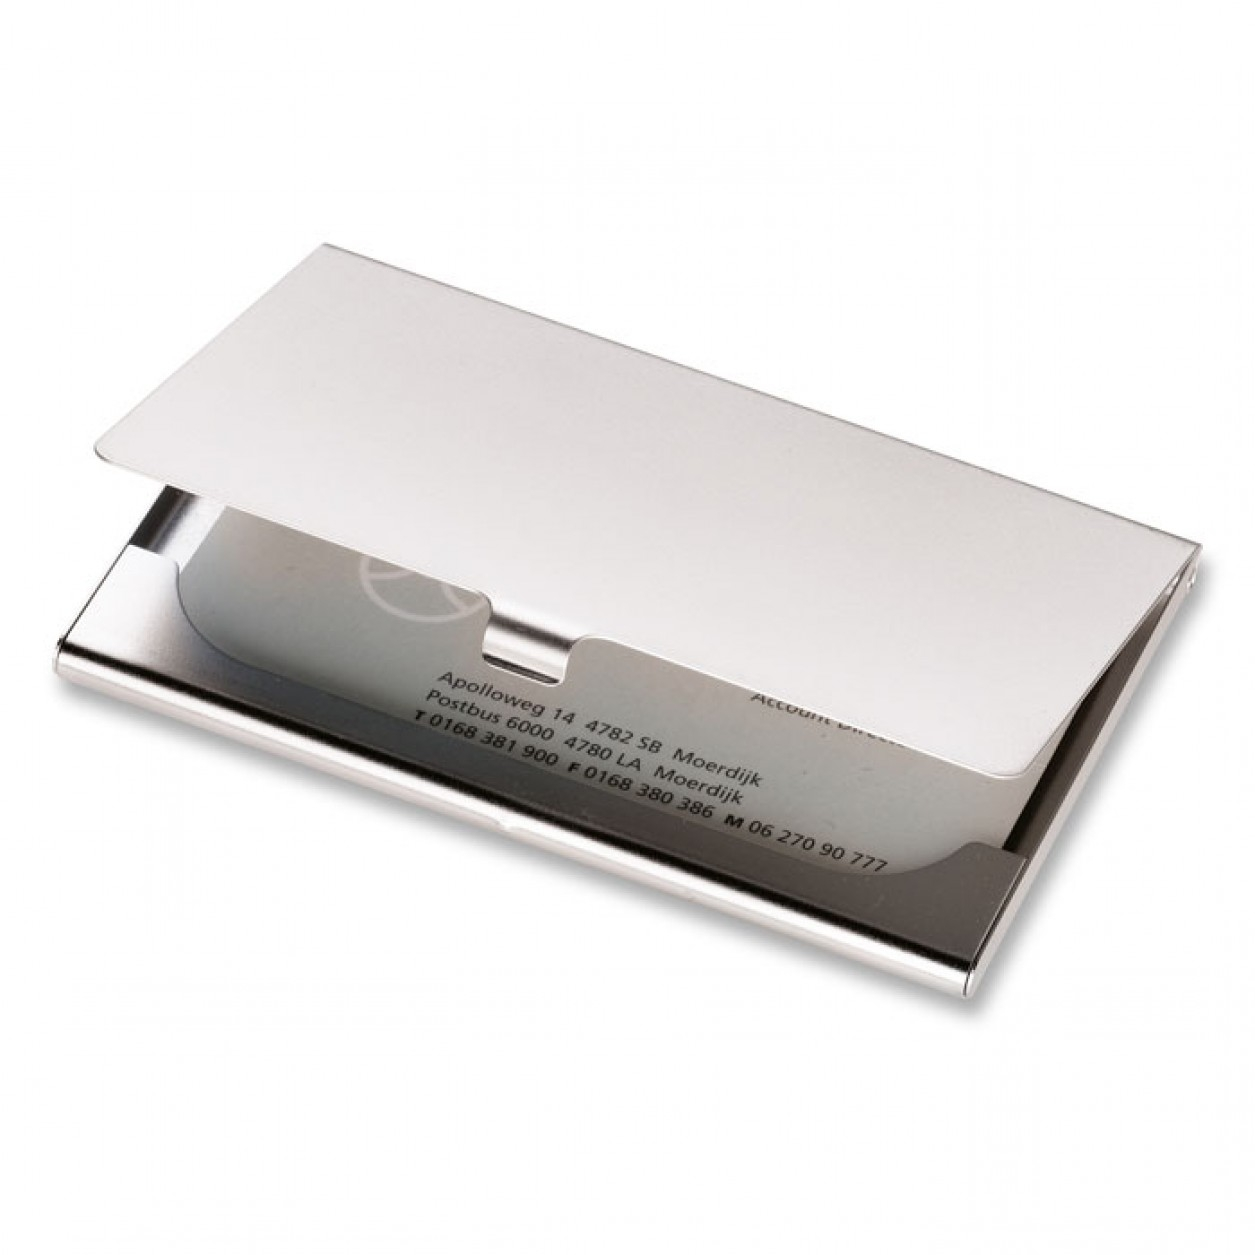 Printed Business Card Holders | Promotional Card Holders | UK